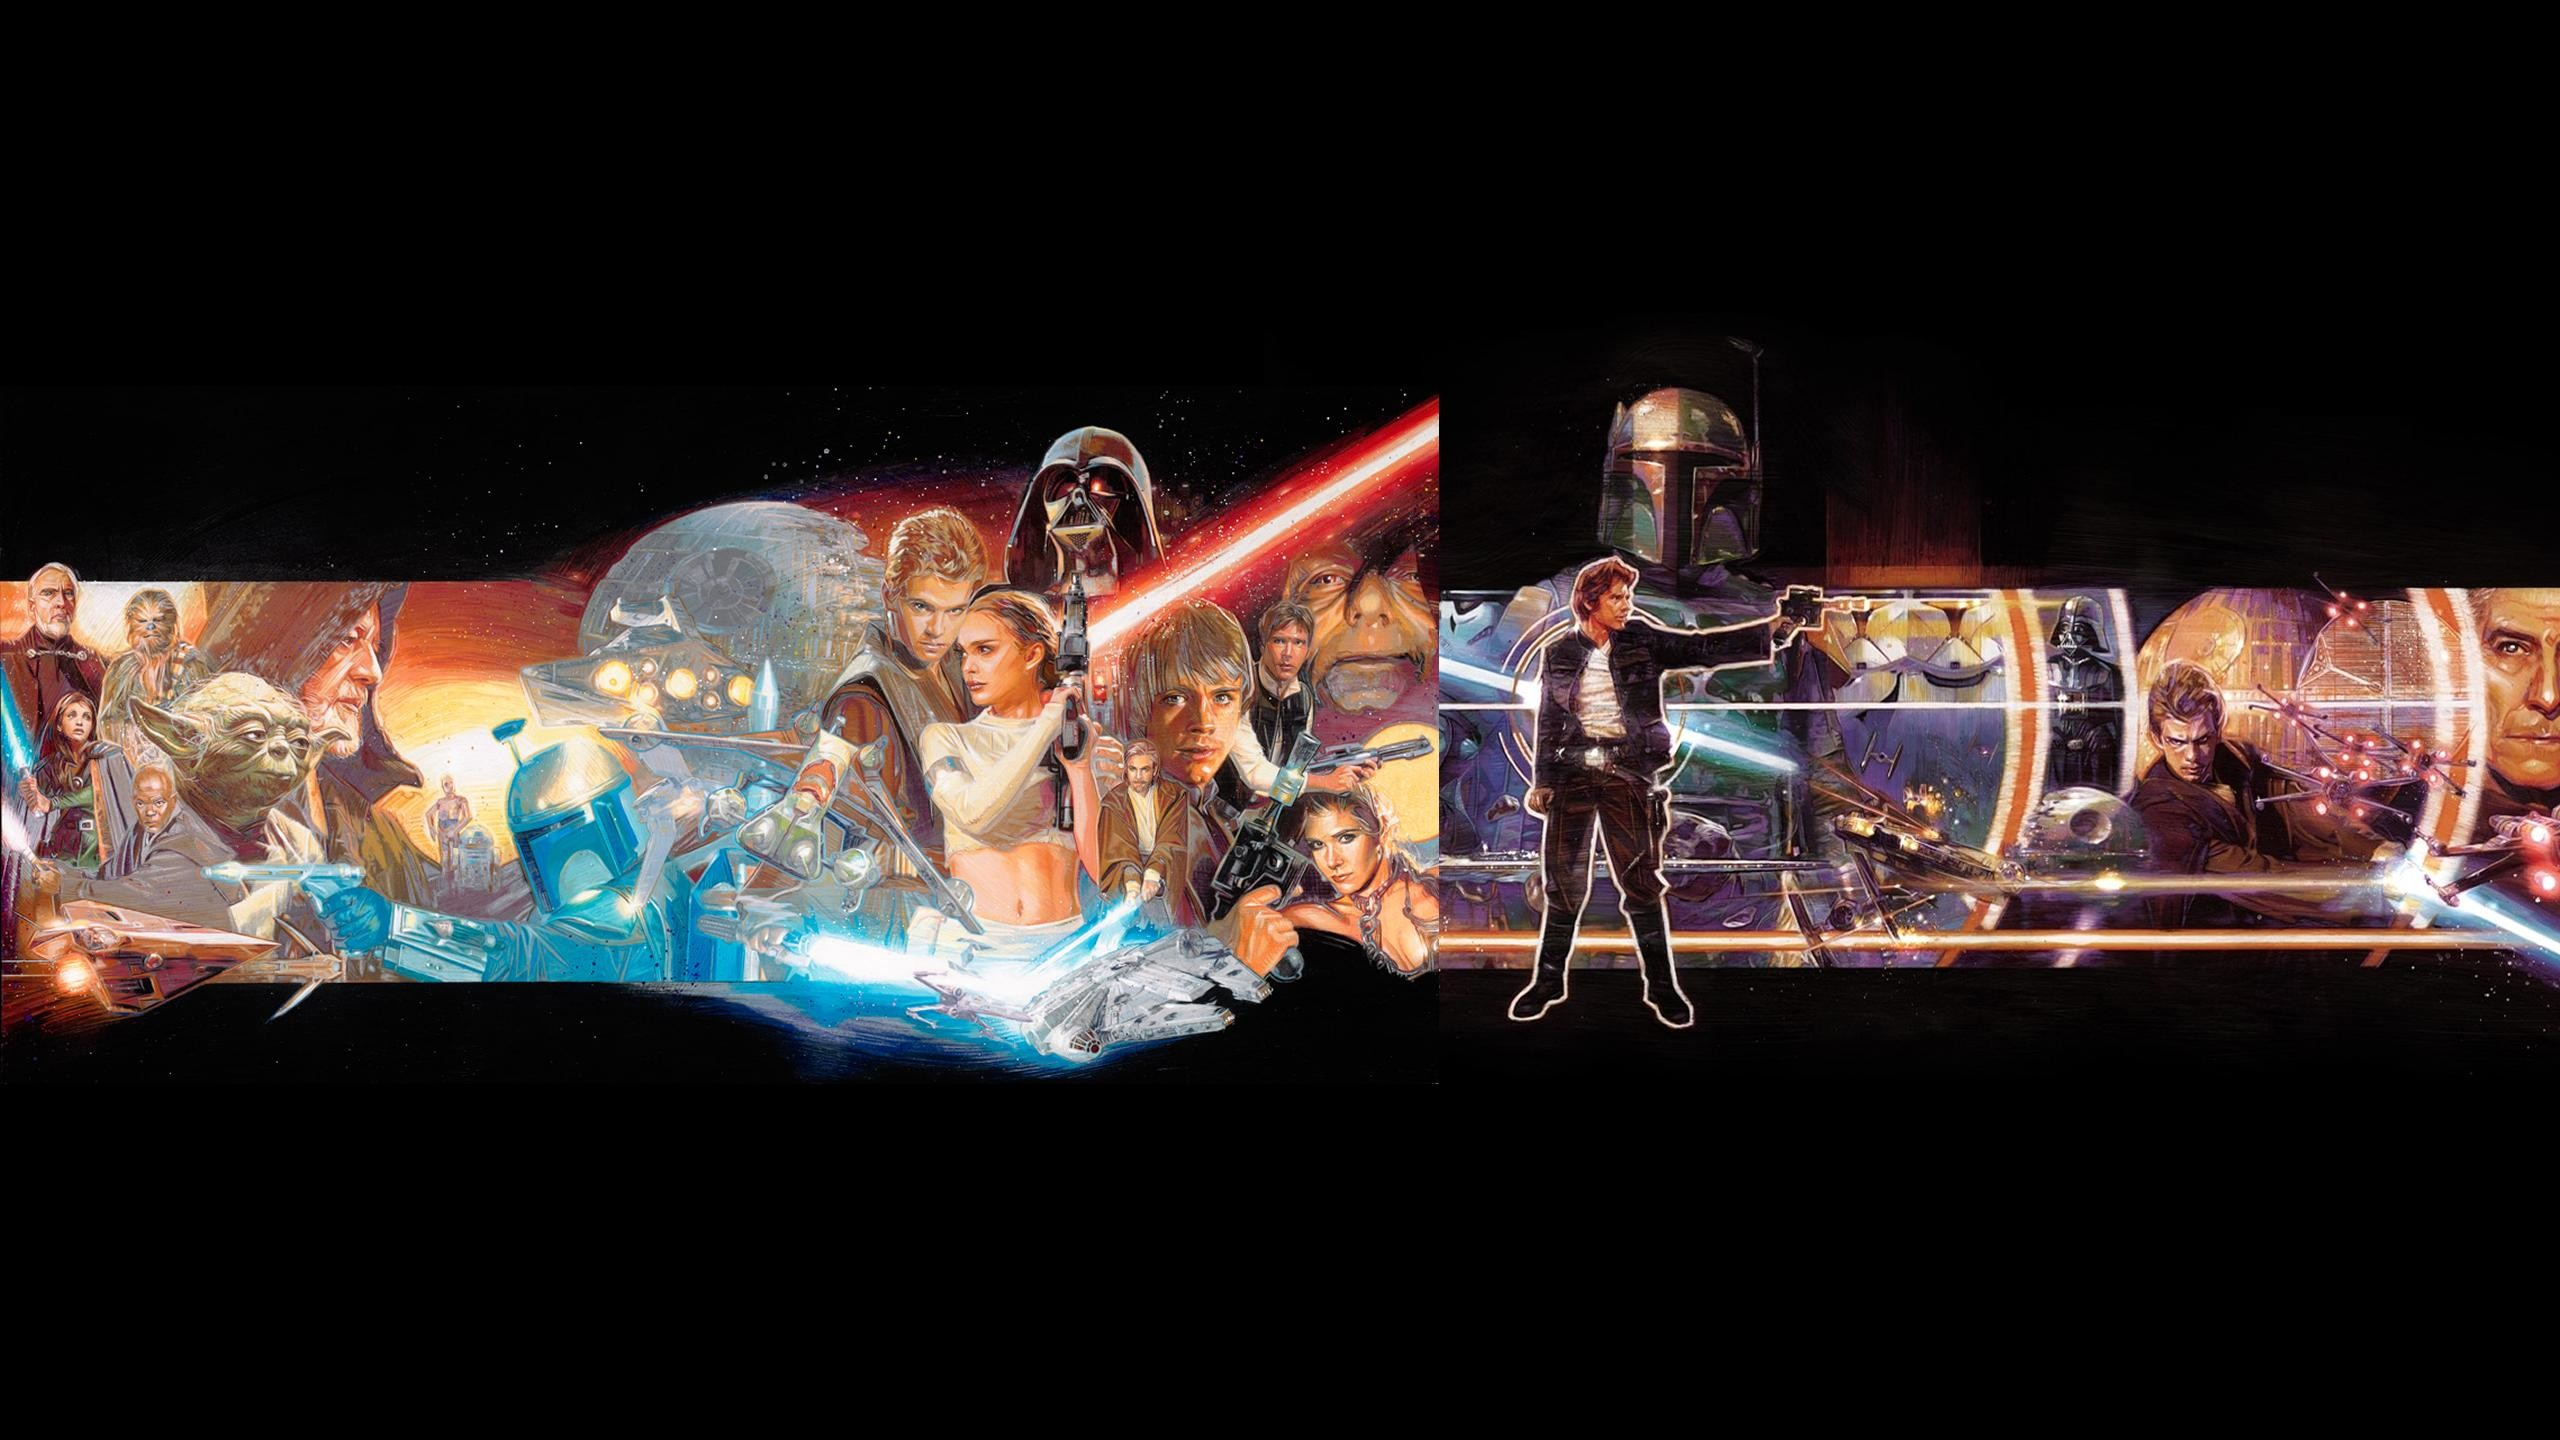 Star Wars Wallpaper Widescreen Posted By Christopher Thompson